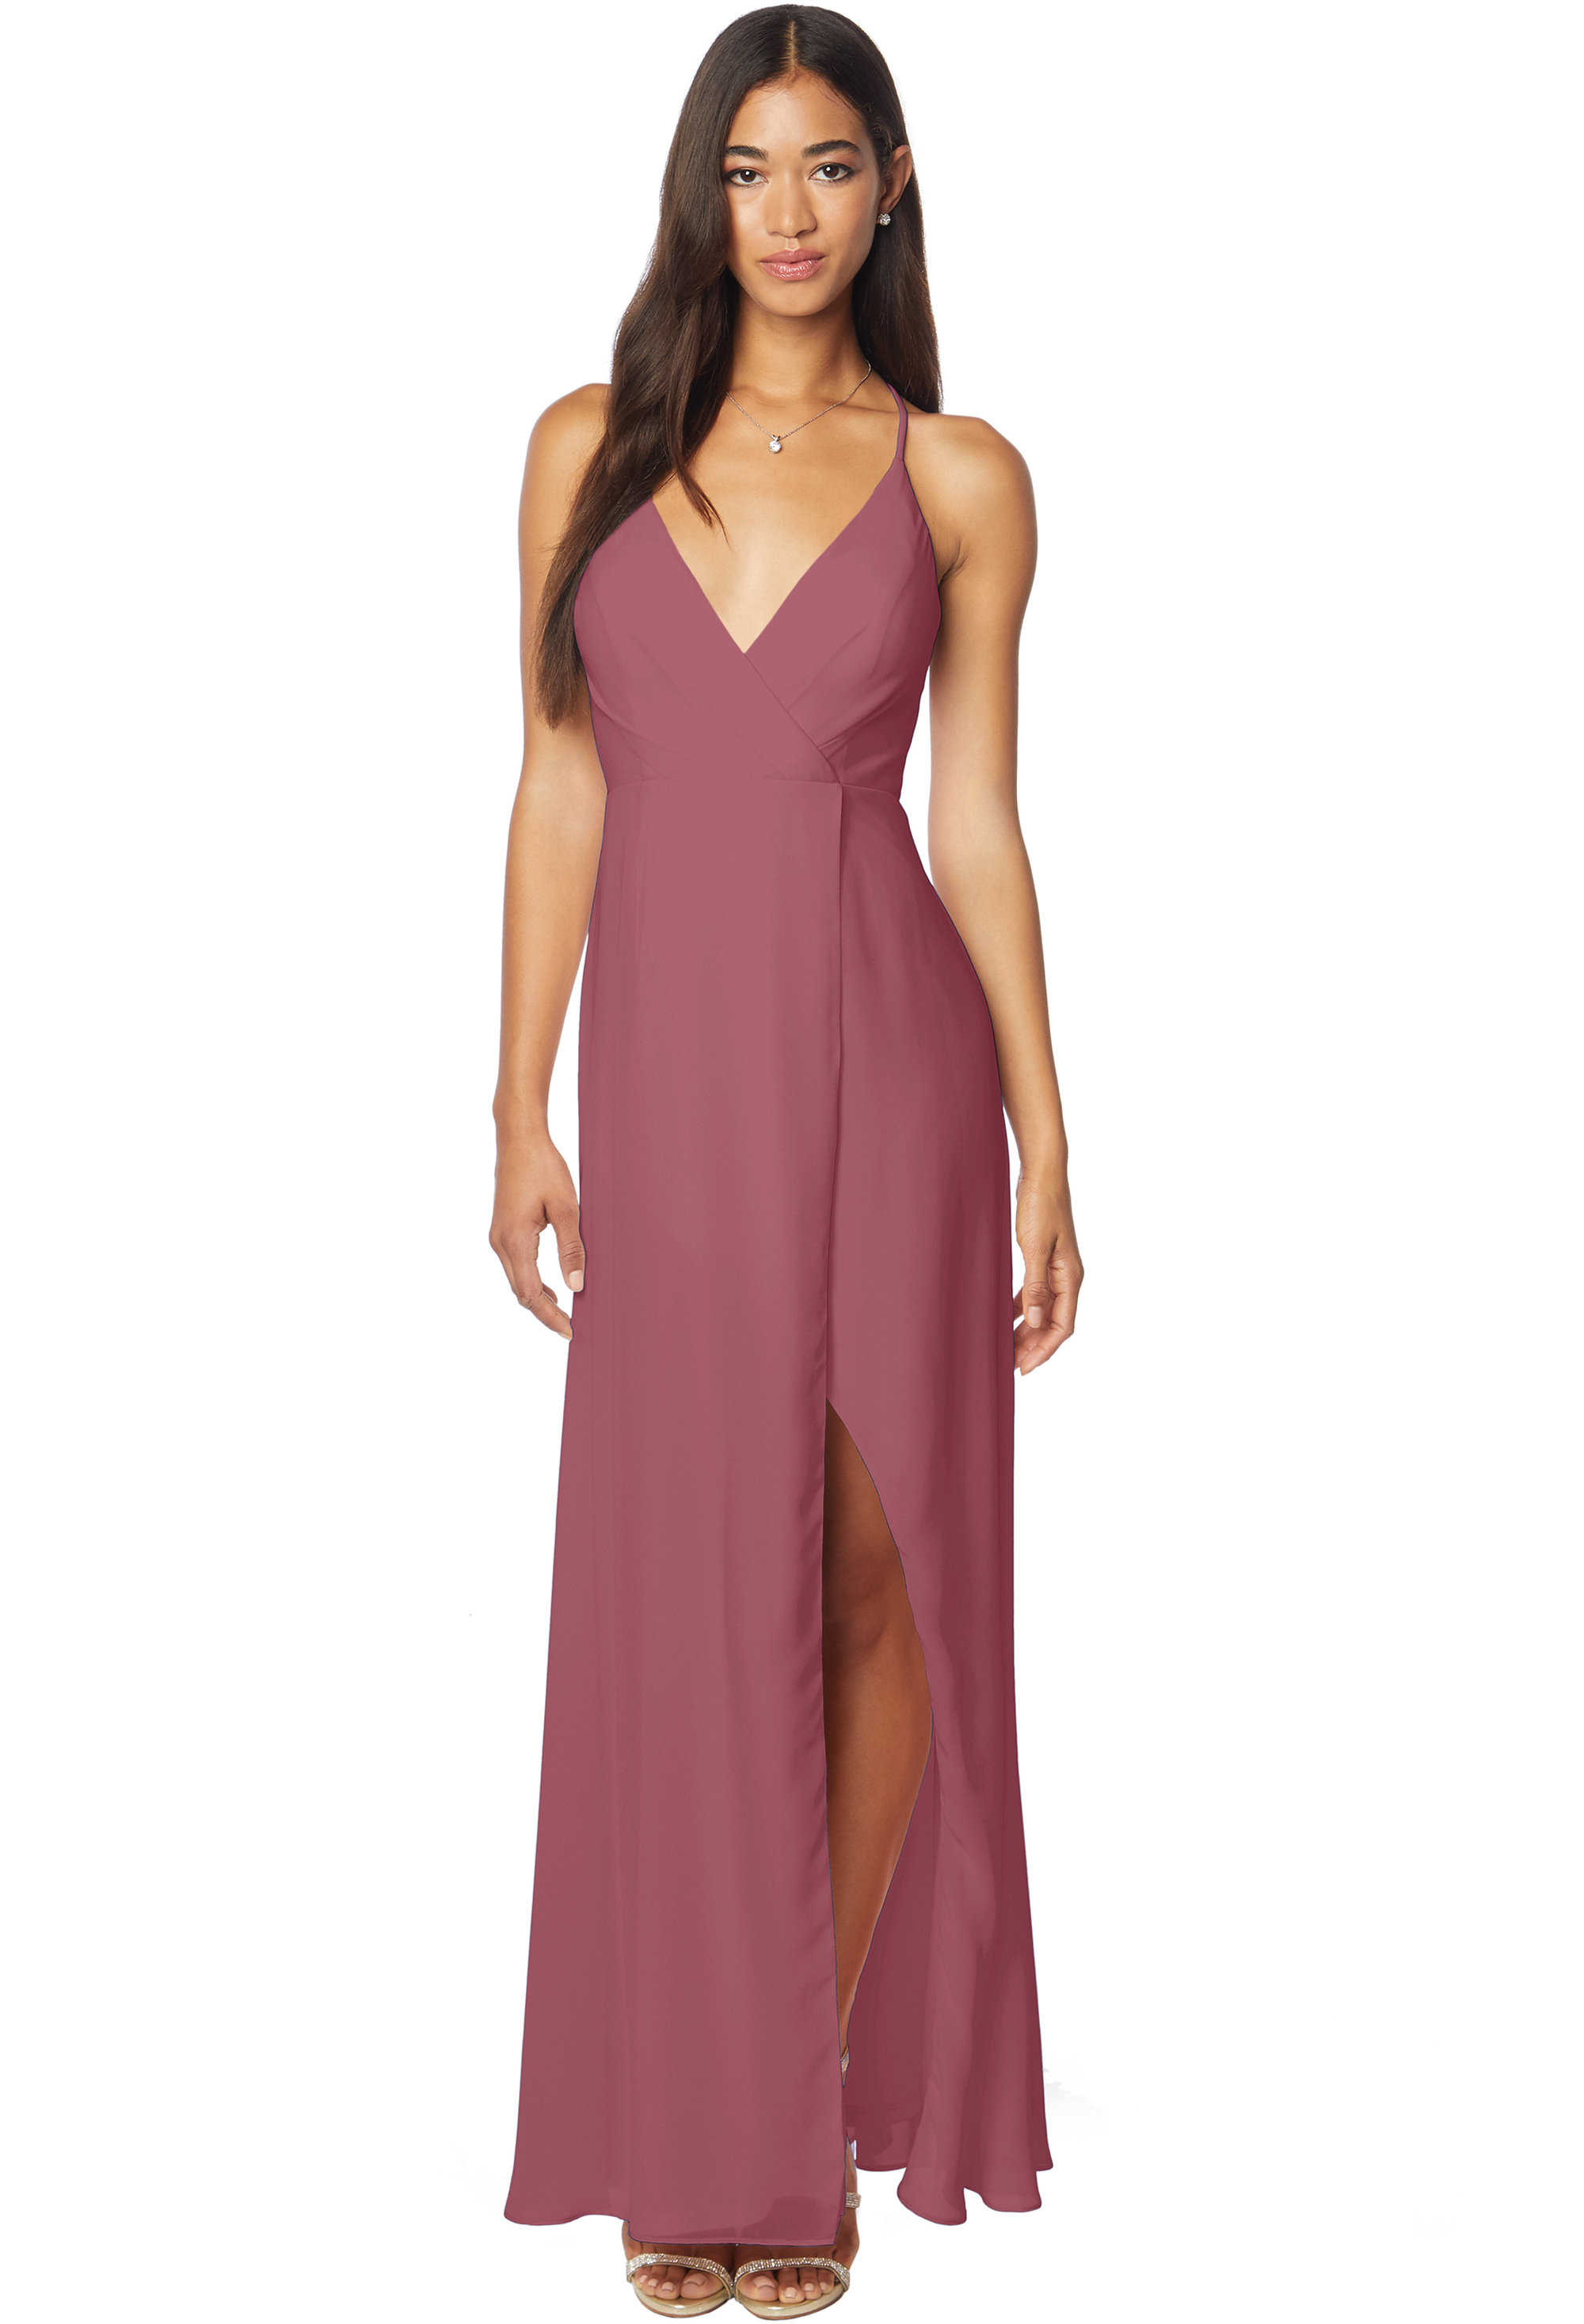 Bill Levkoff ROSEWOOD Chiffon V-neck A-line gown, $170.00 Front